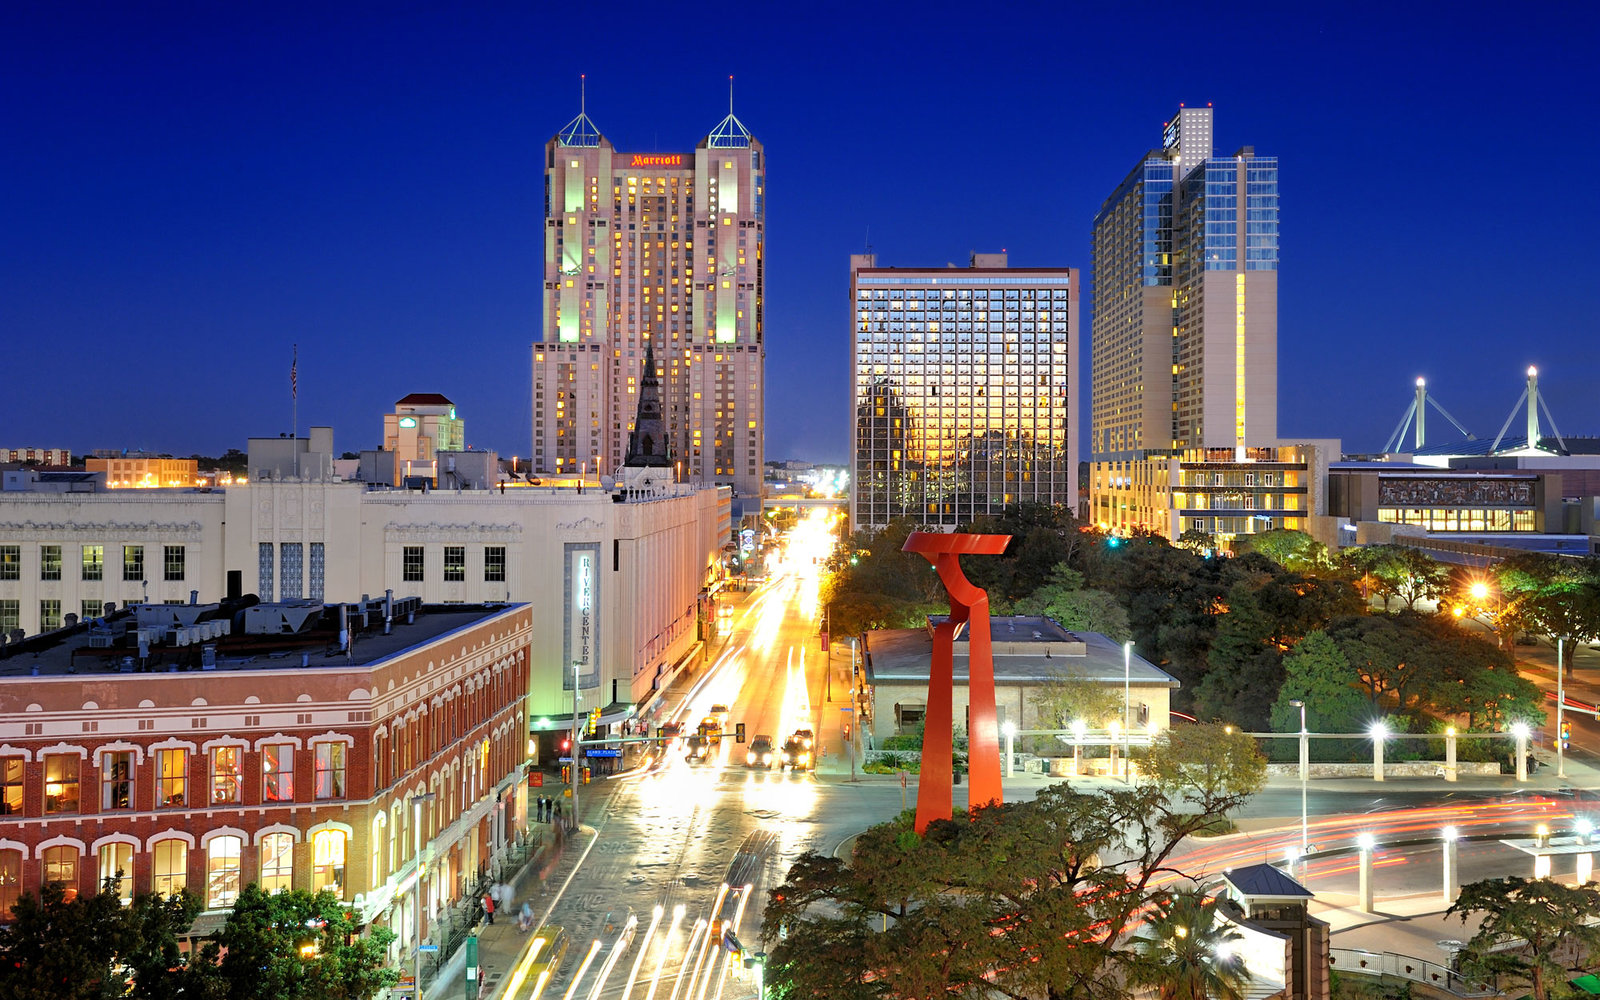 June: San Antonio, Texas